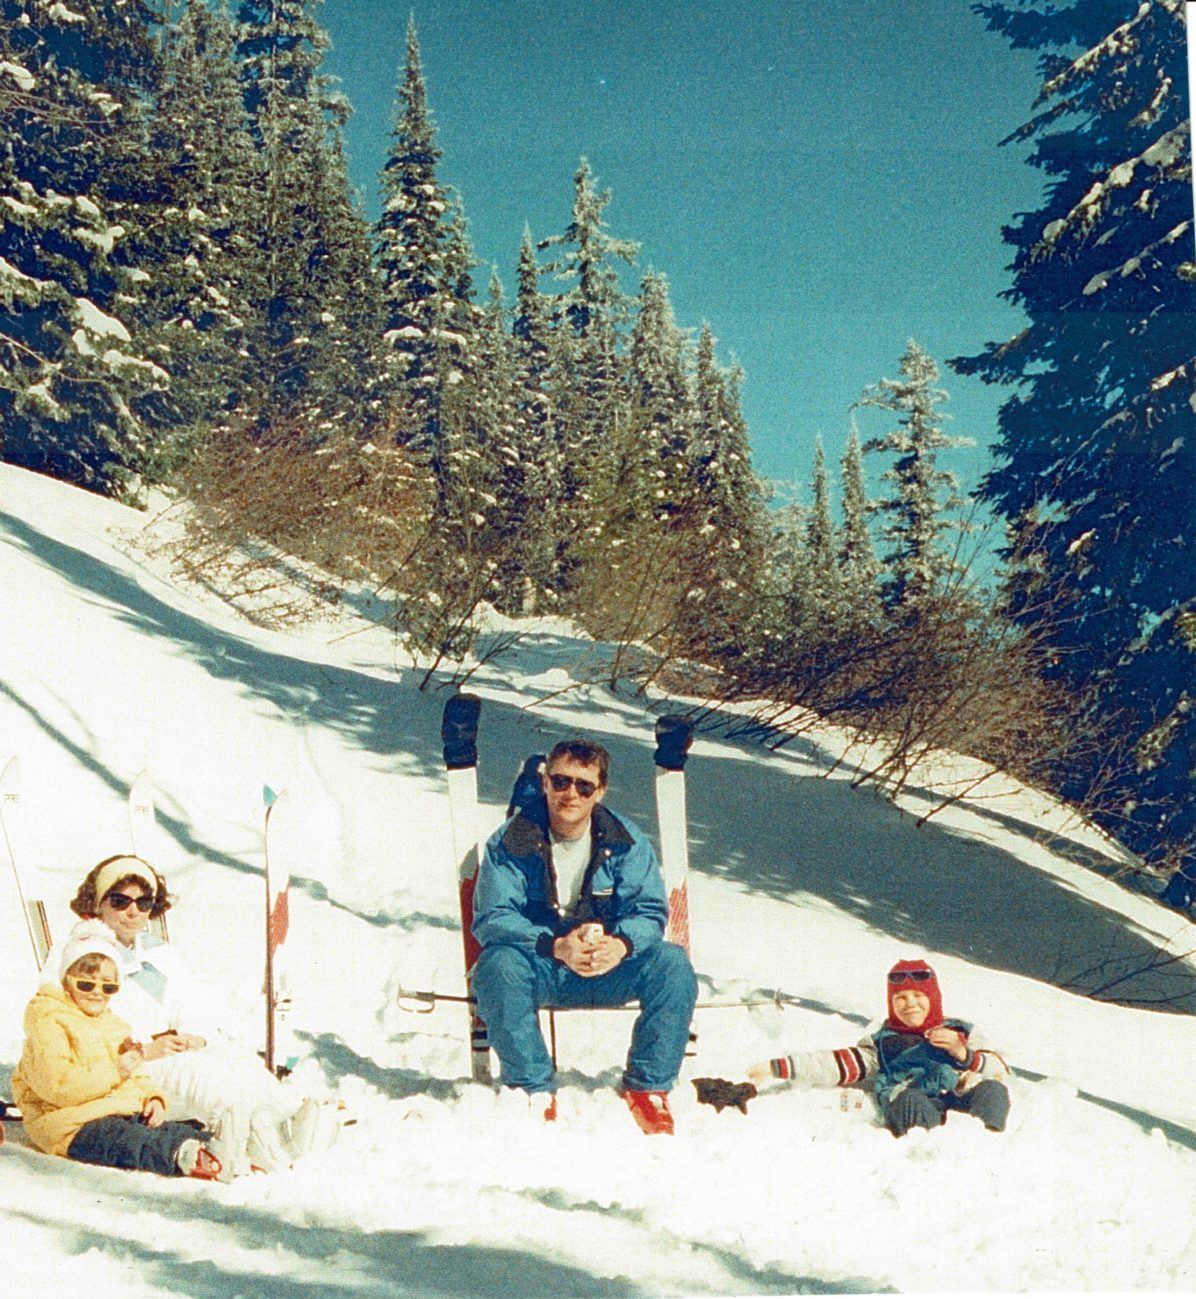 Dana, Kim, Craig, and Mike at Mt. Spokane, 1988, on Swede's Folly run. // Photo courtesy of Kim Lukes